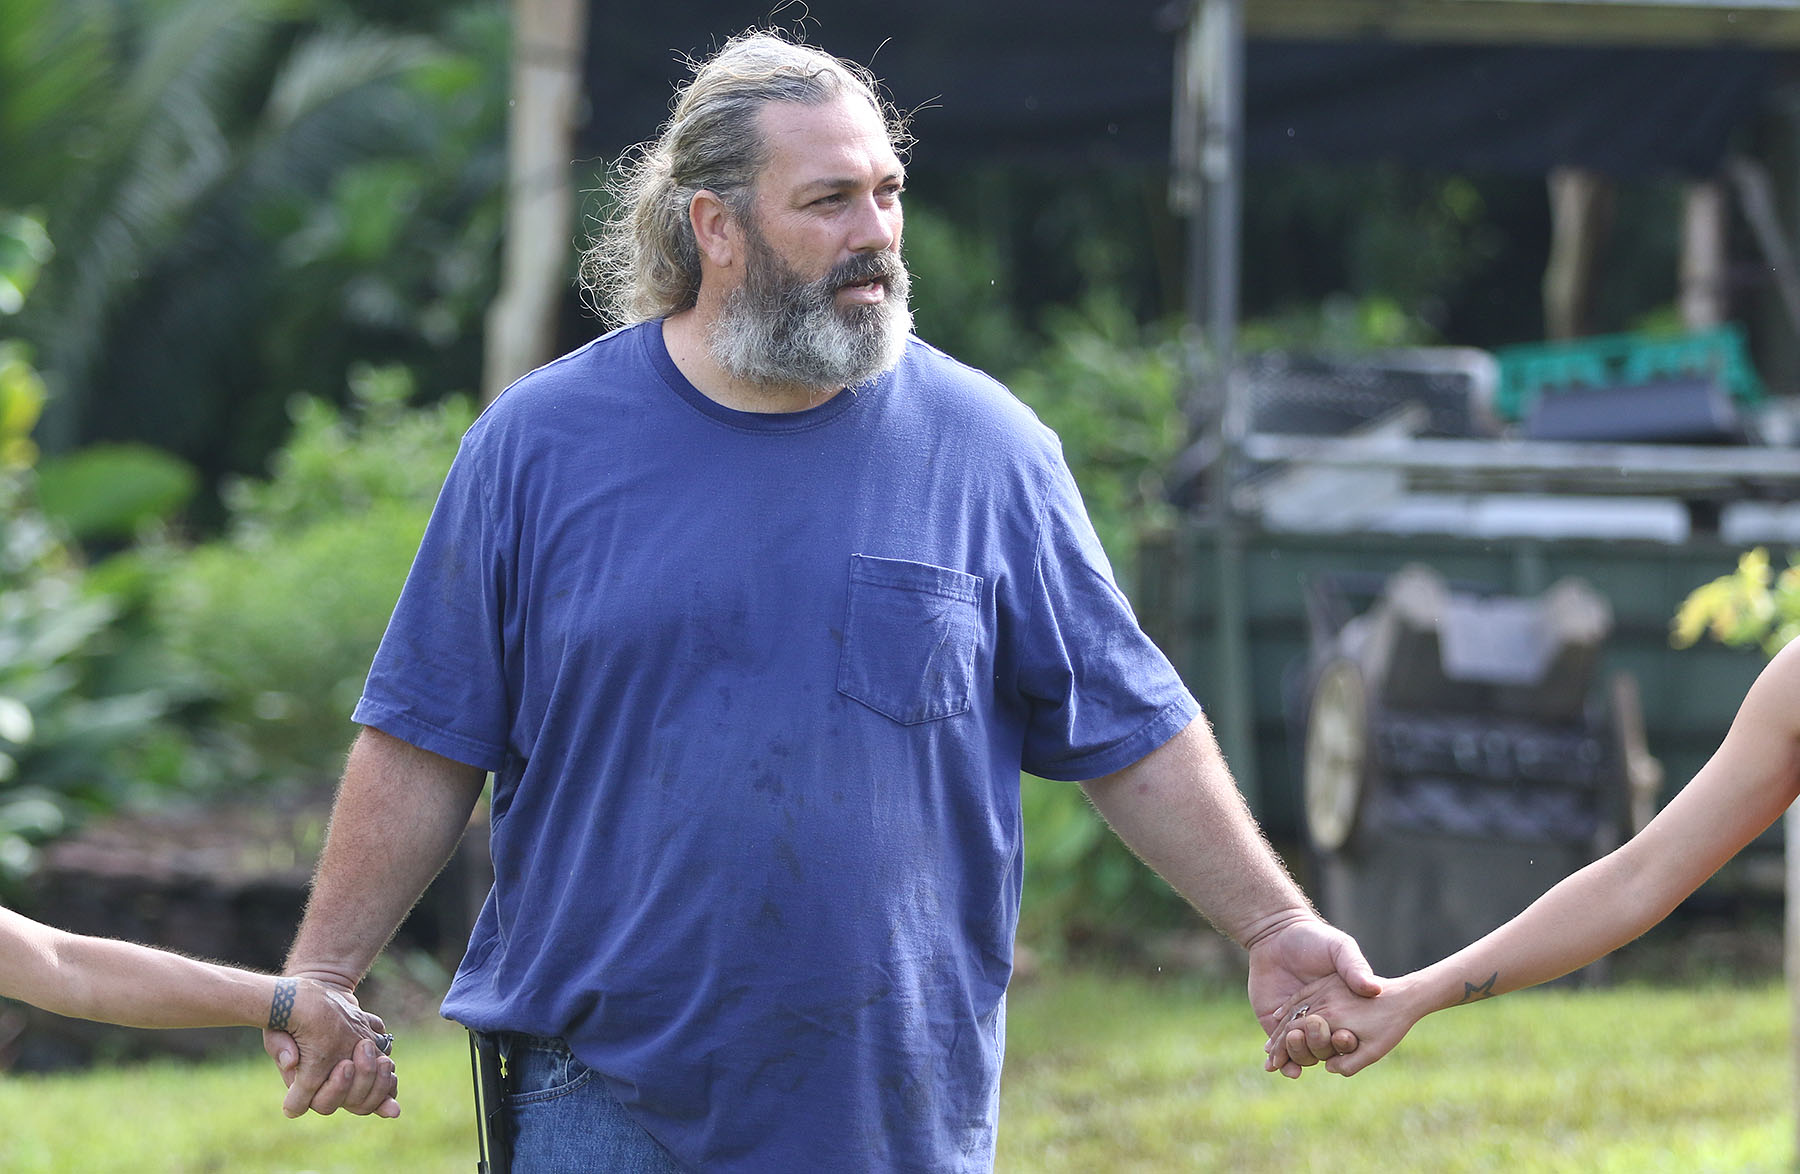 <p>Nature park caretaker Casey Jackson talks about the important cultural meanings of place and connections to ancestors. Jackson also asks each of the visitors to share information about ancestors of their own.</p>